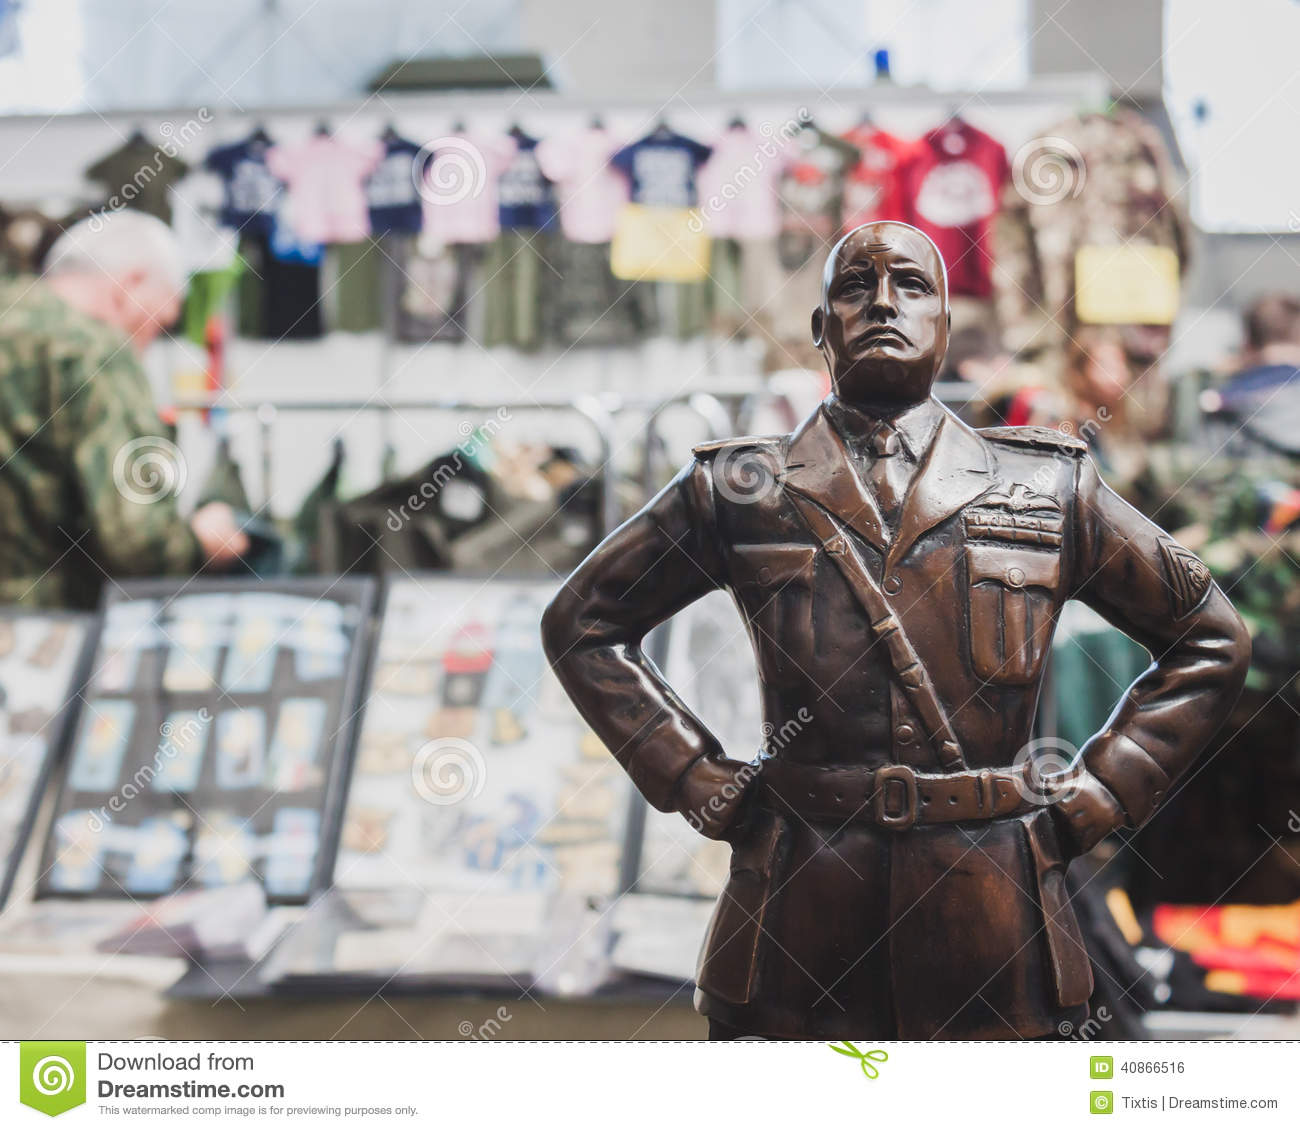 Exhibition Booth Vector Free Download : Mussolini s statue at militalia in milan italy editorial